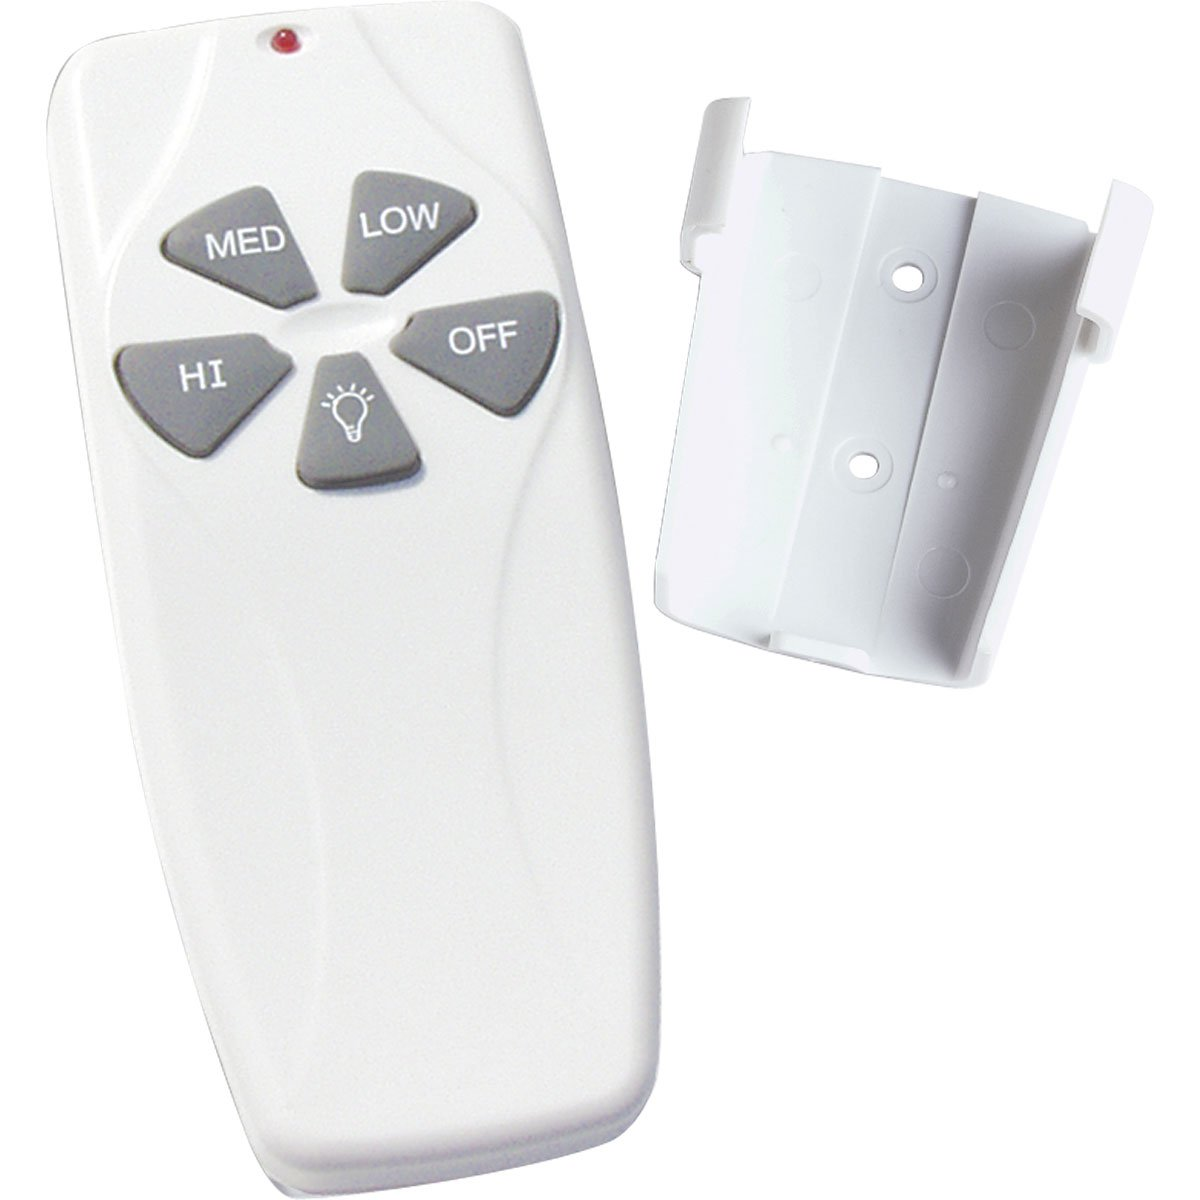 Progress lighting p2614 01 fan and light hand held remote for fan progress lighting p2614 01 fan and light hand held remote for fan speed and dimming light control white ceiling fan remote controls amazon aloadofball Choice Image